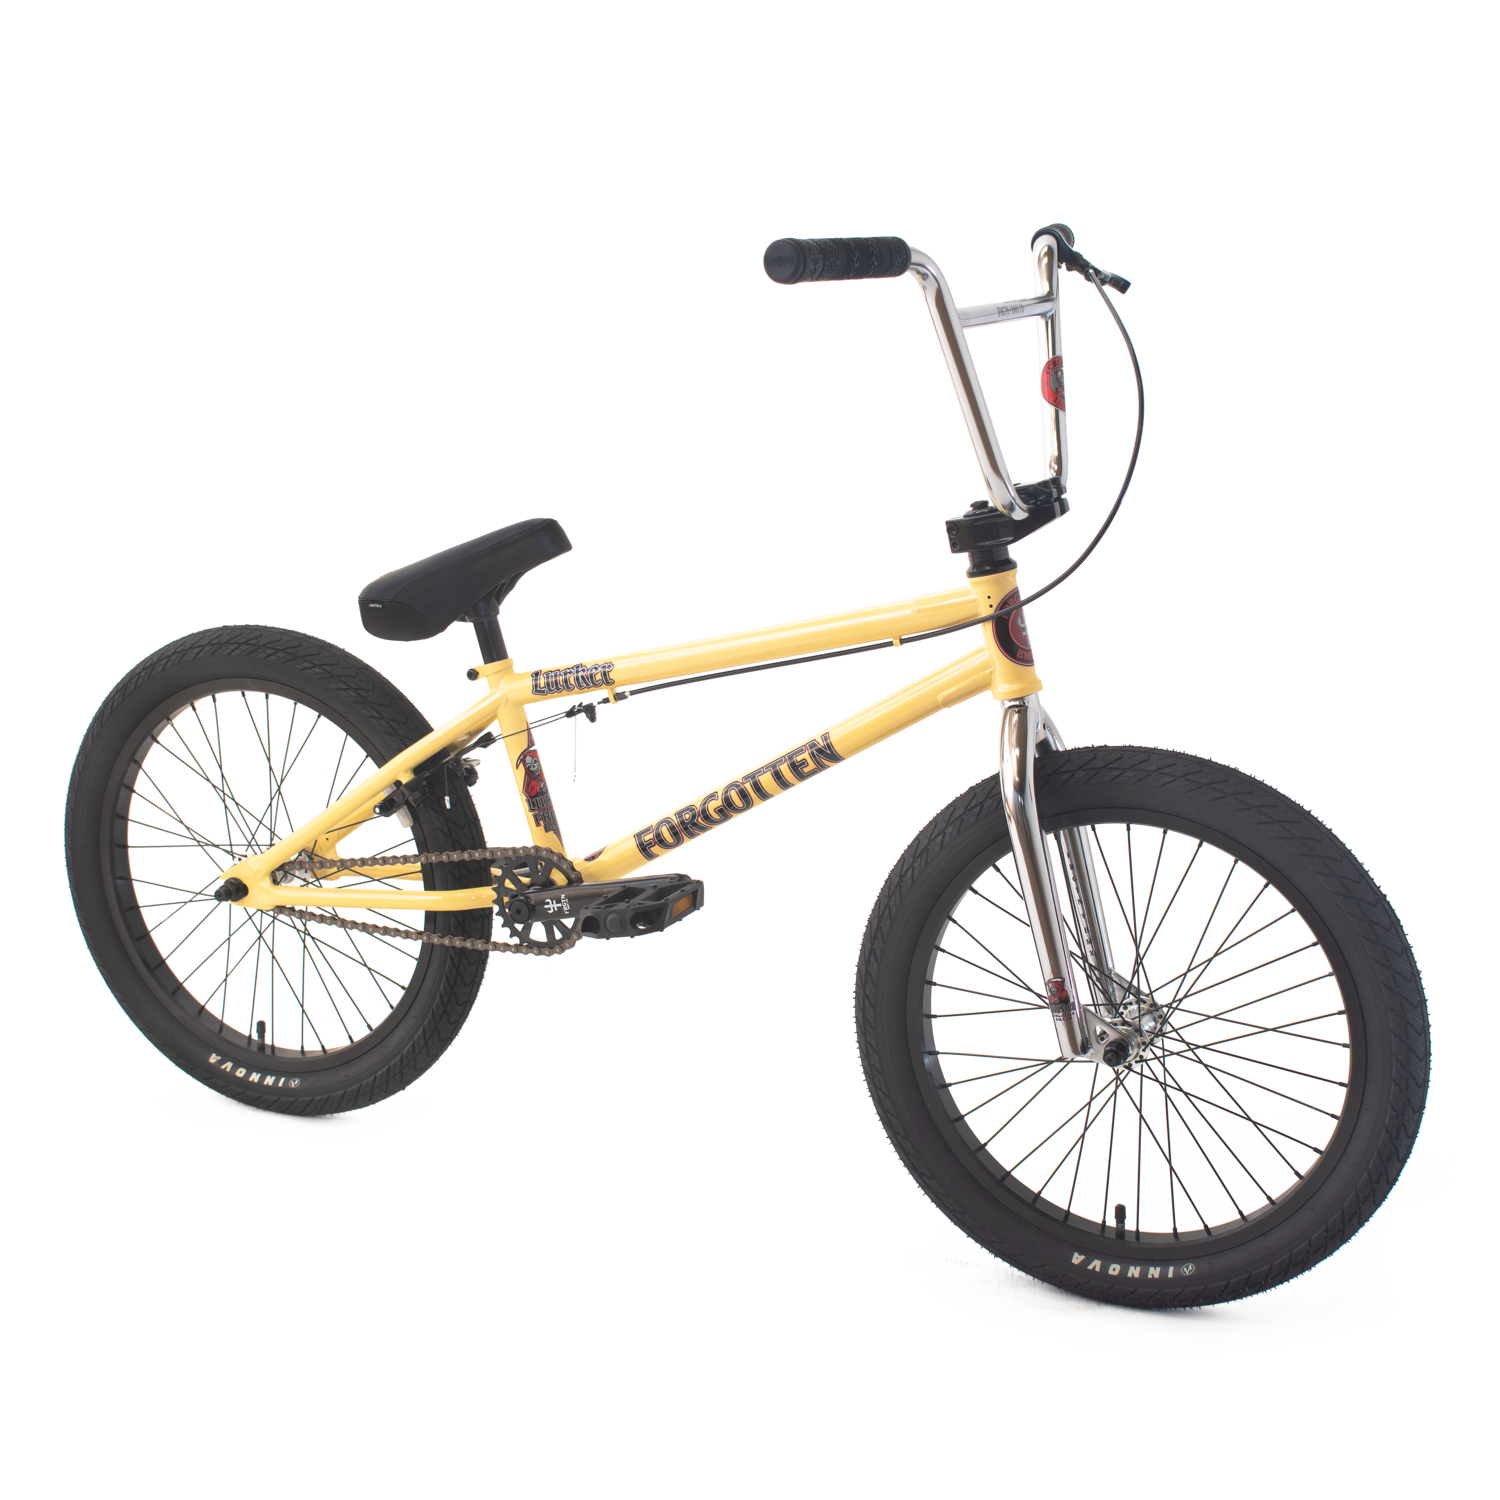 Lurker BMX bike - Tan - Forgotten BMX